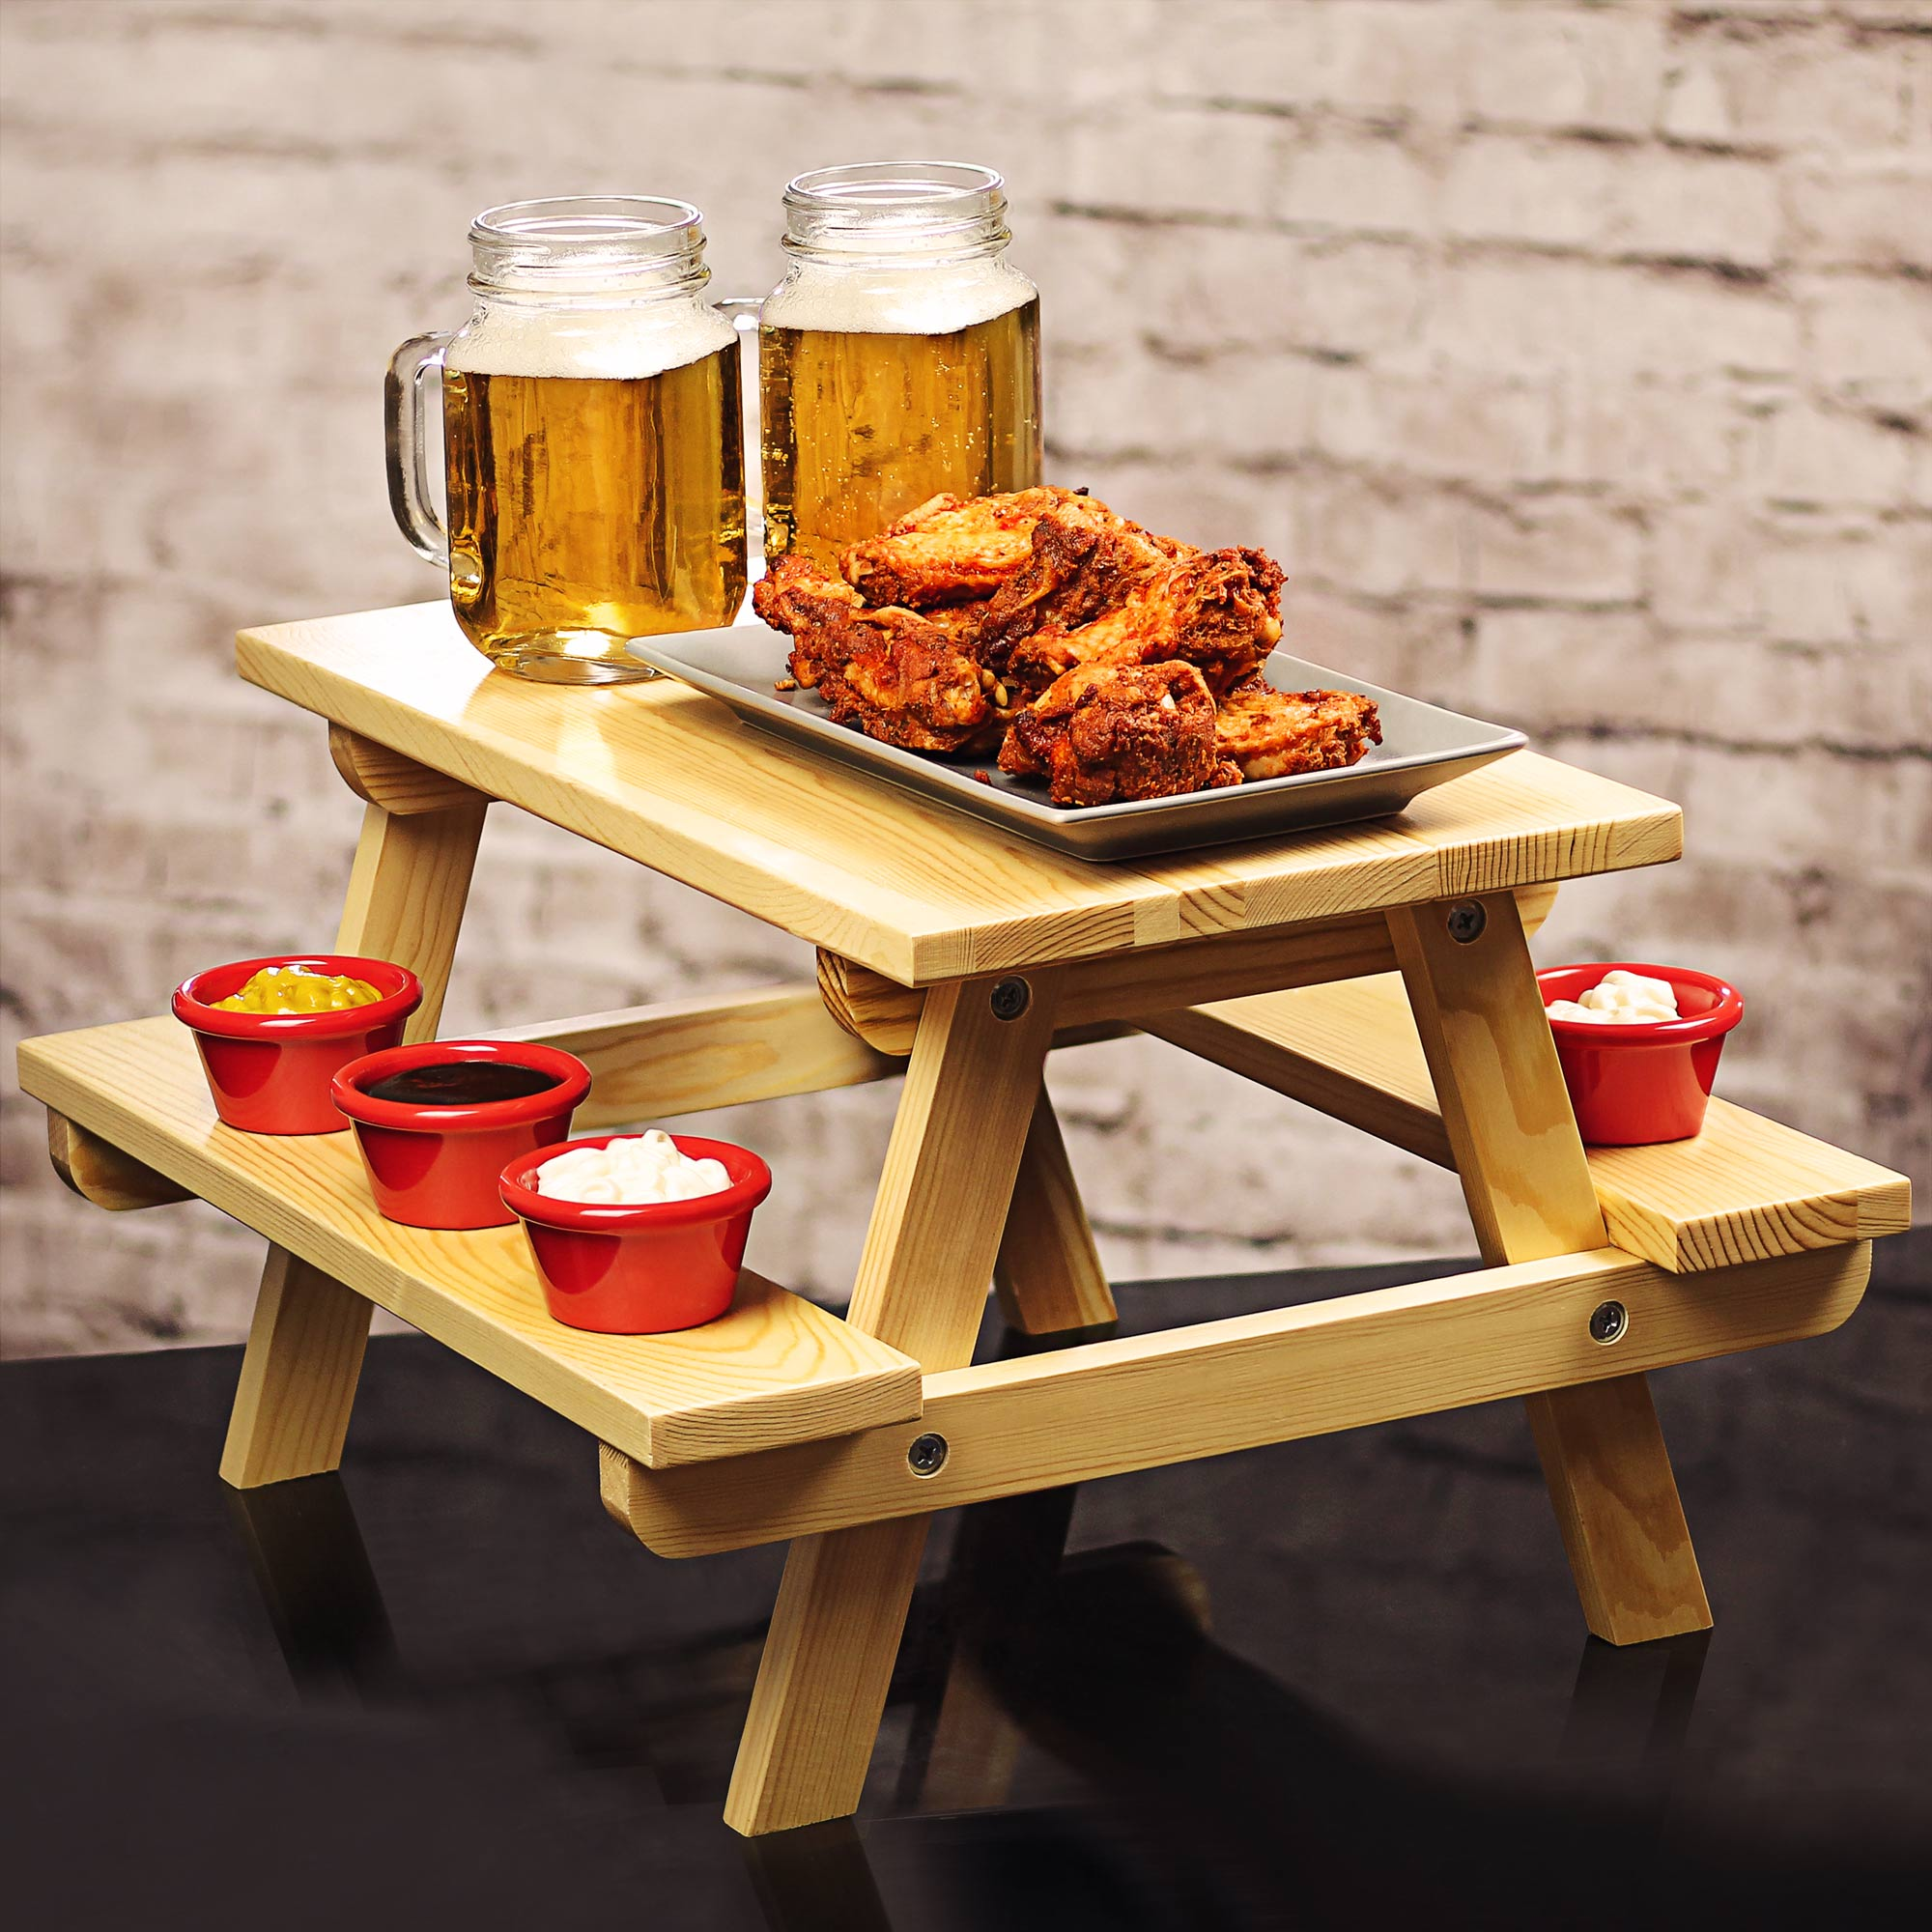 Miniature Pine Picnic Bench Serving Platter